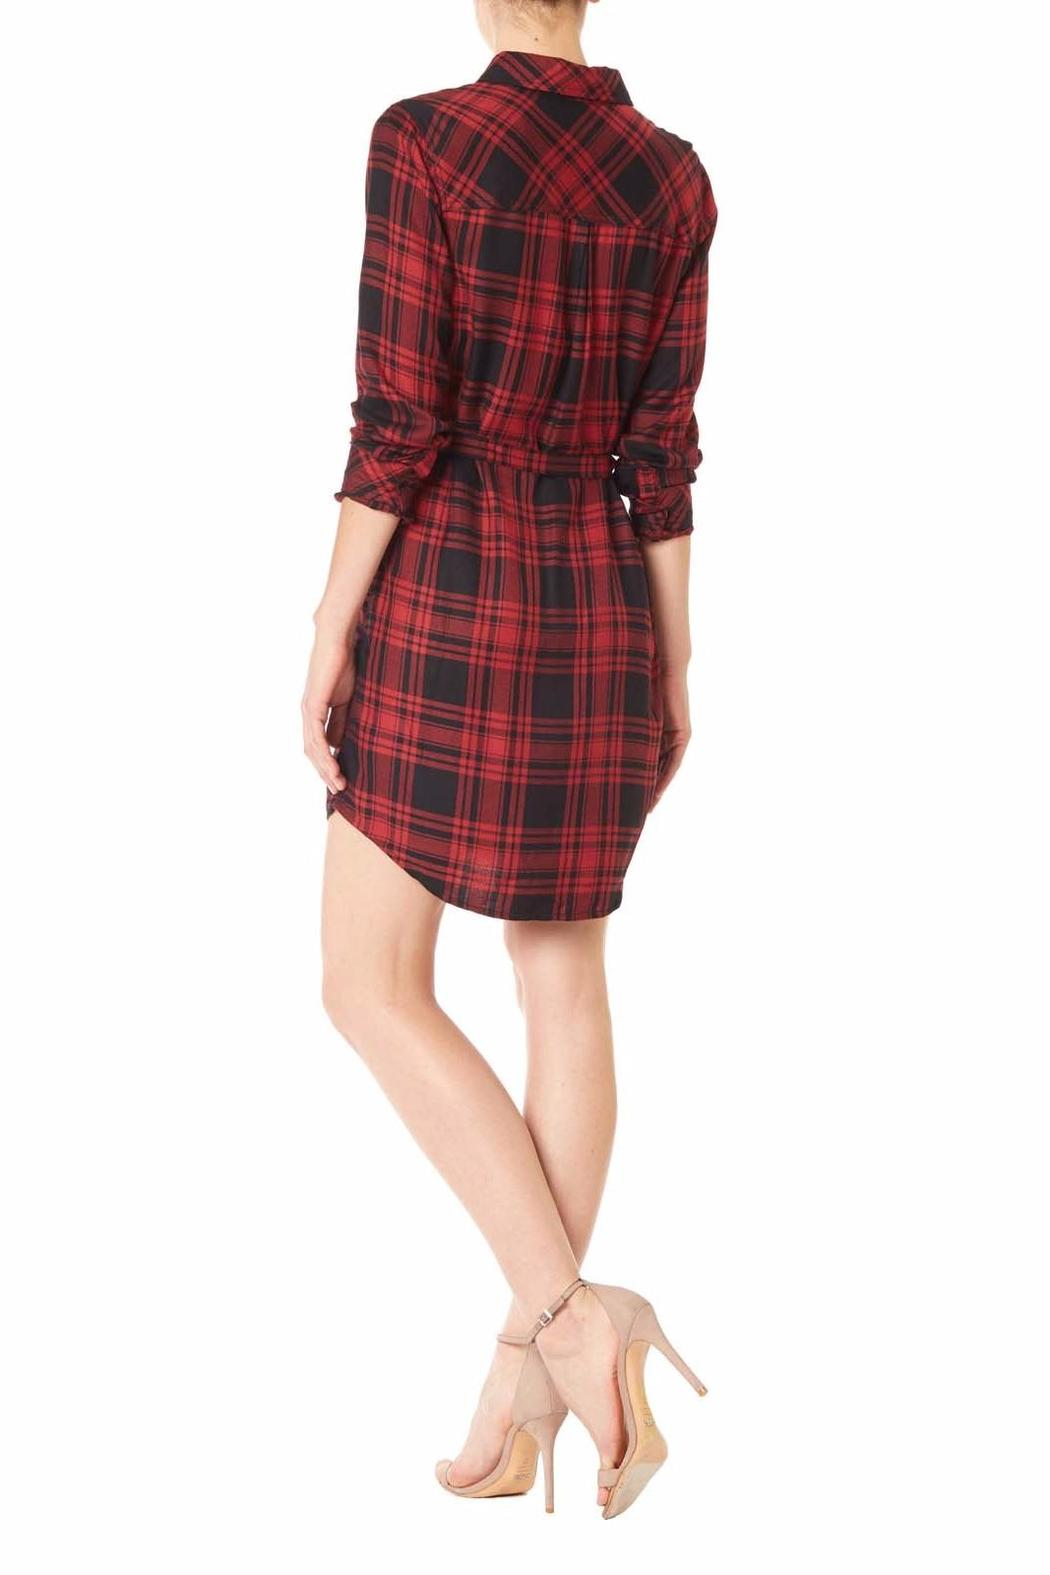 Sanctuary plaid shirt dress from florida by marketplace on for Red plaid dress shirt